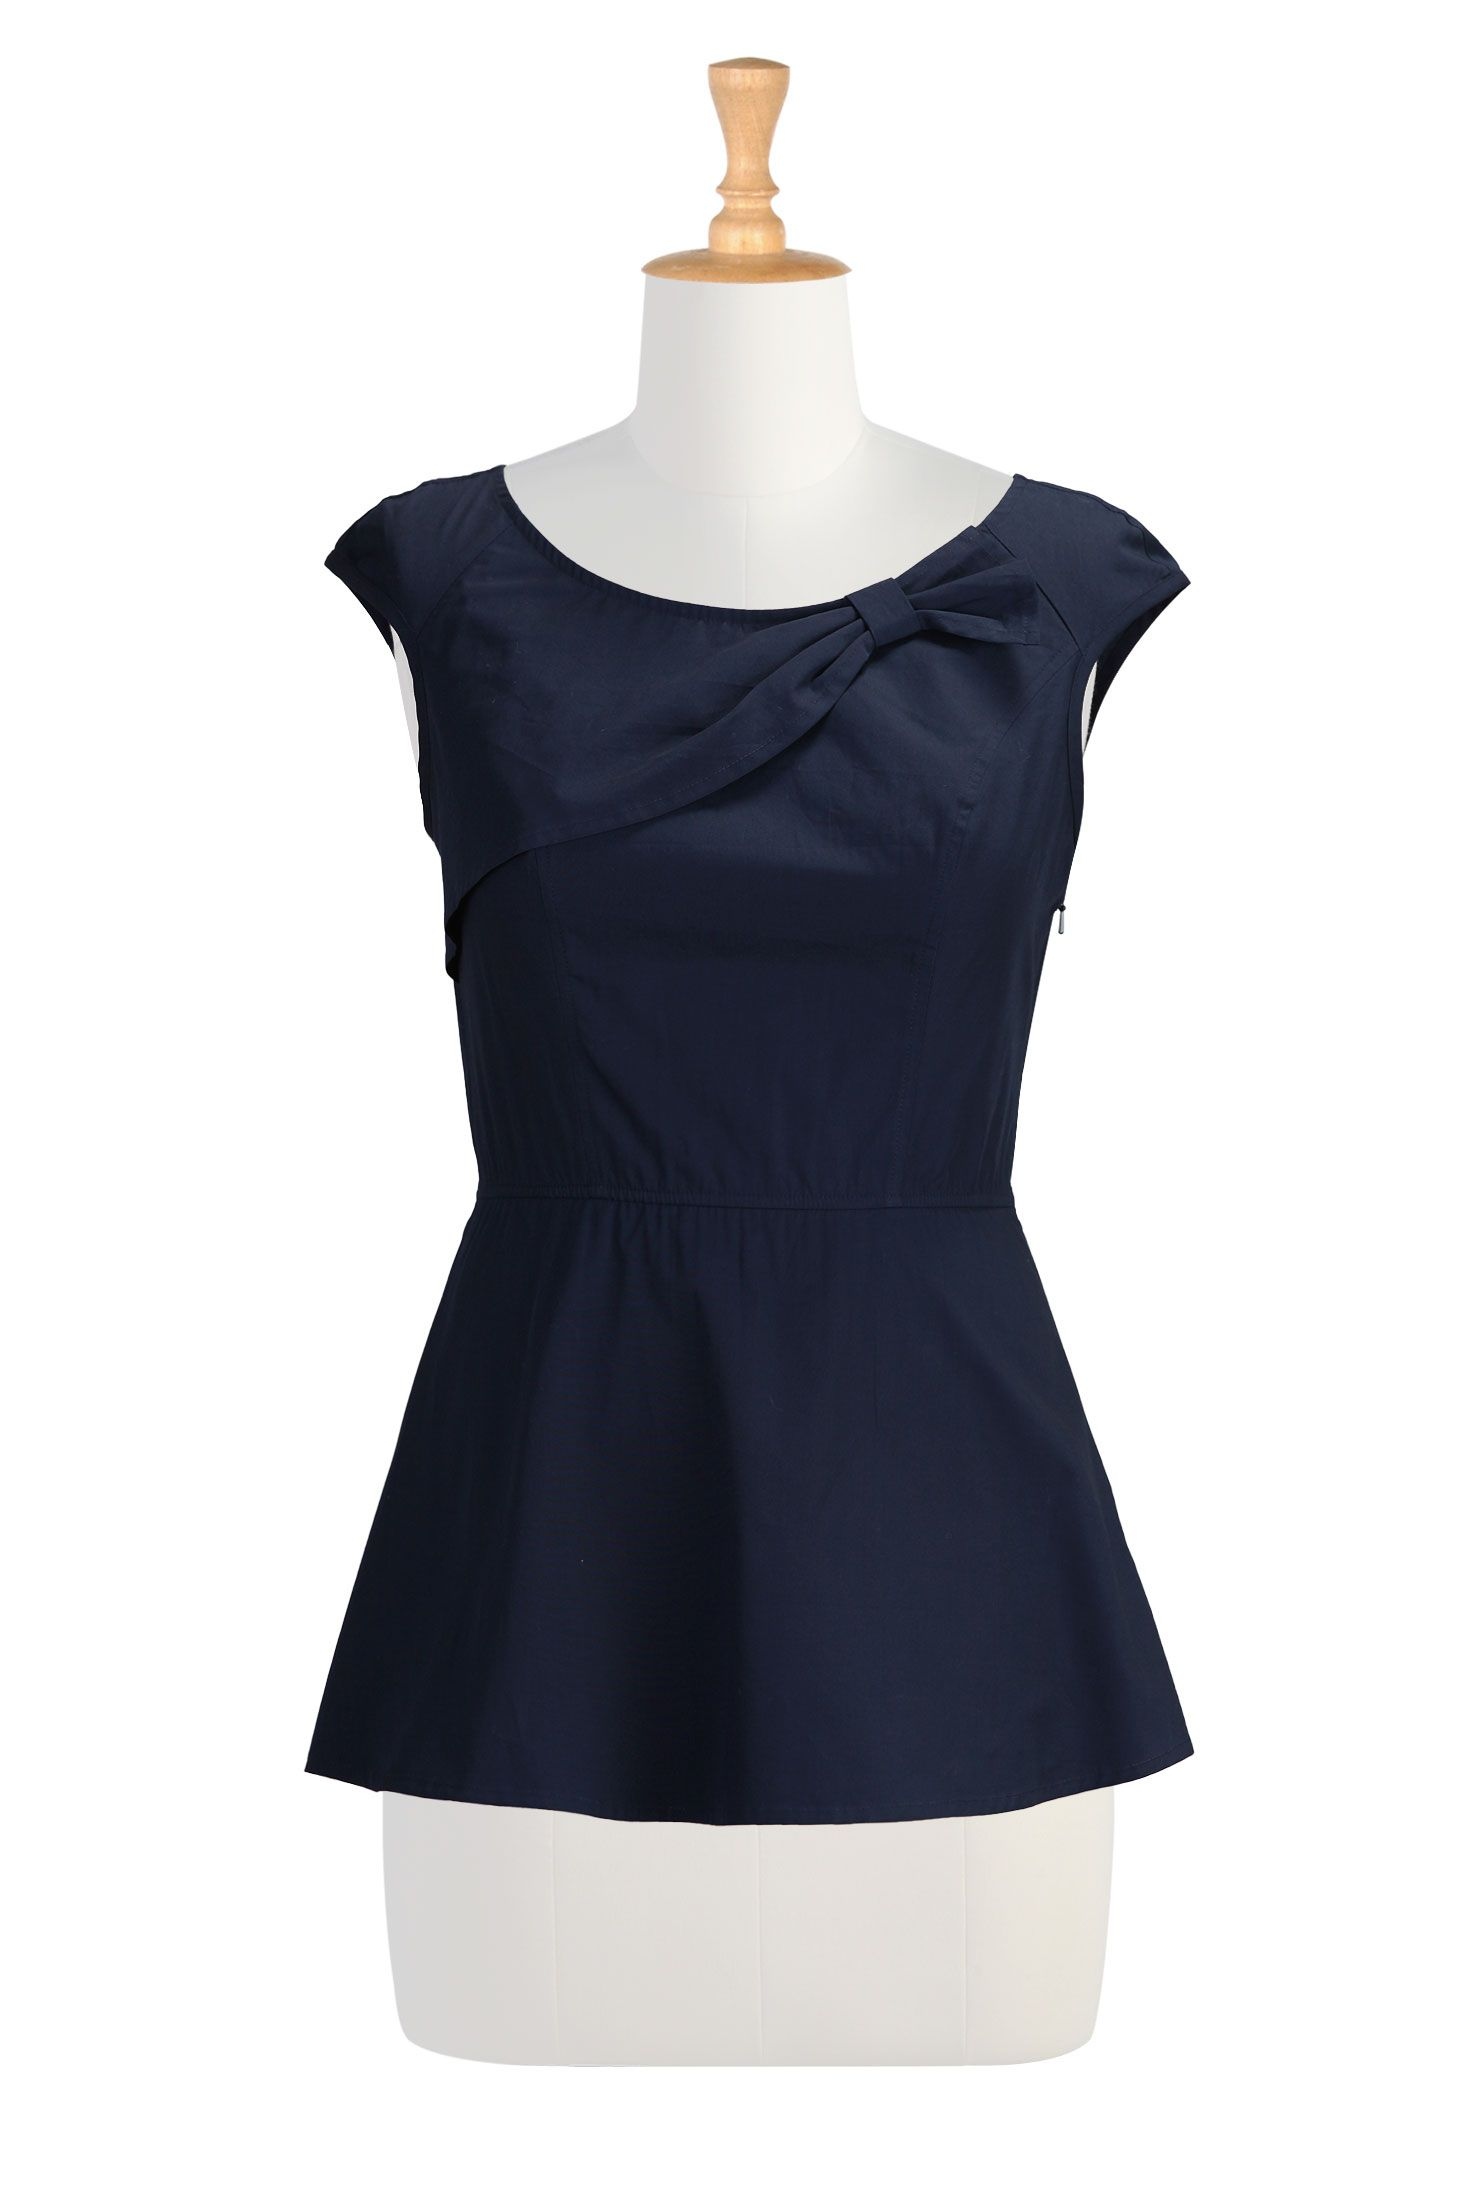 Find great deals on eBay for womens cotton tops. Shop with confidence.